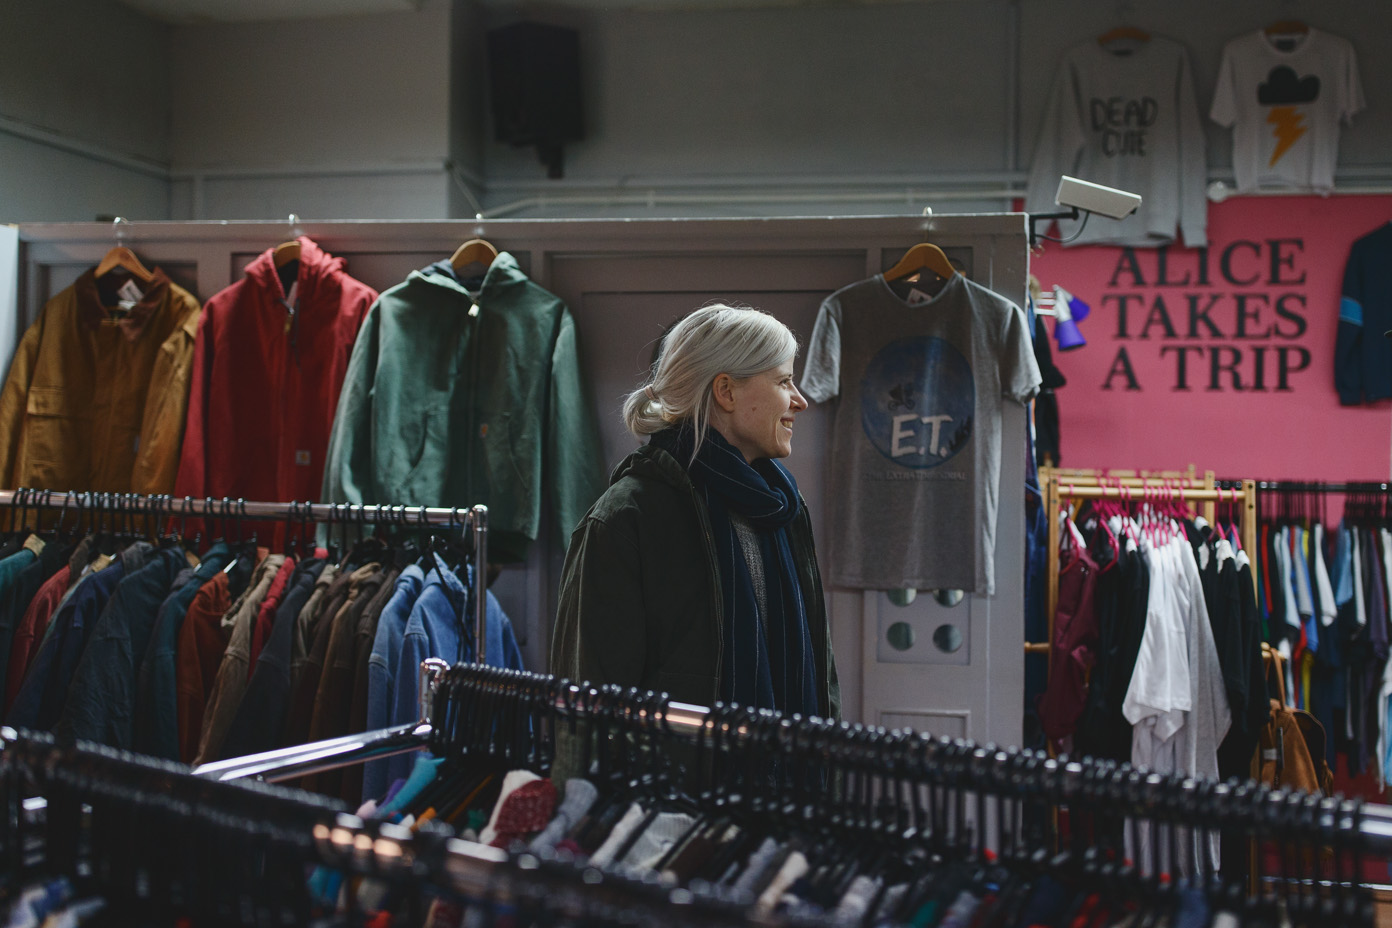 Amber Arcades in a clothing store in Sheffield, by Katy Blackwood